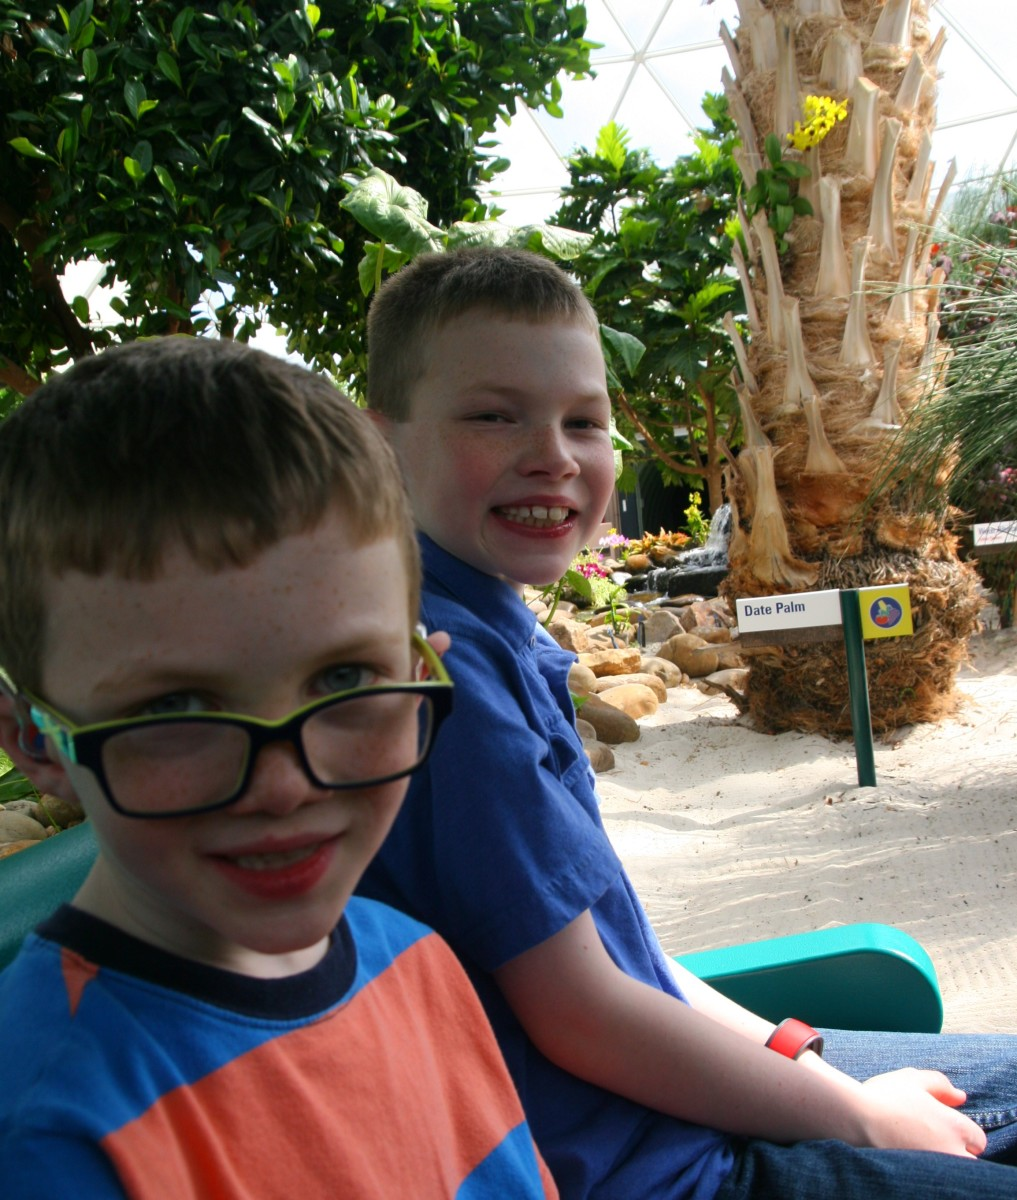 A sedate boat ride through Disney's greenhouses is a great way to cool off during the busy part of the day. This ride rarely generates long lines and is appropriate for all ages.